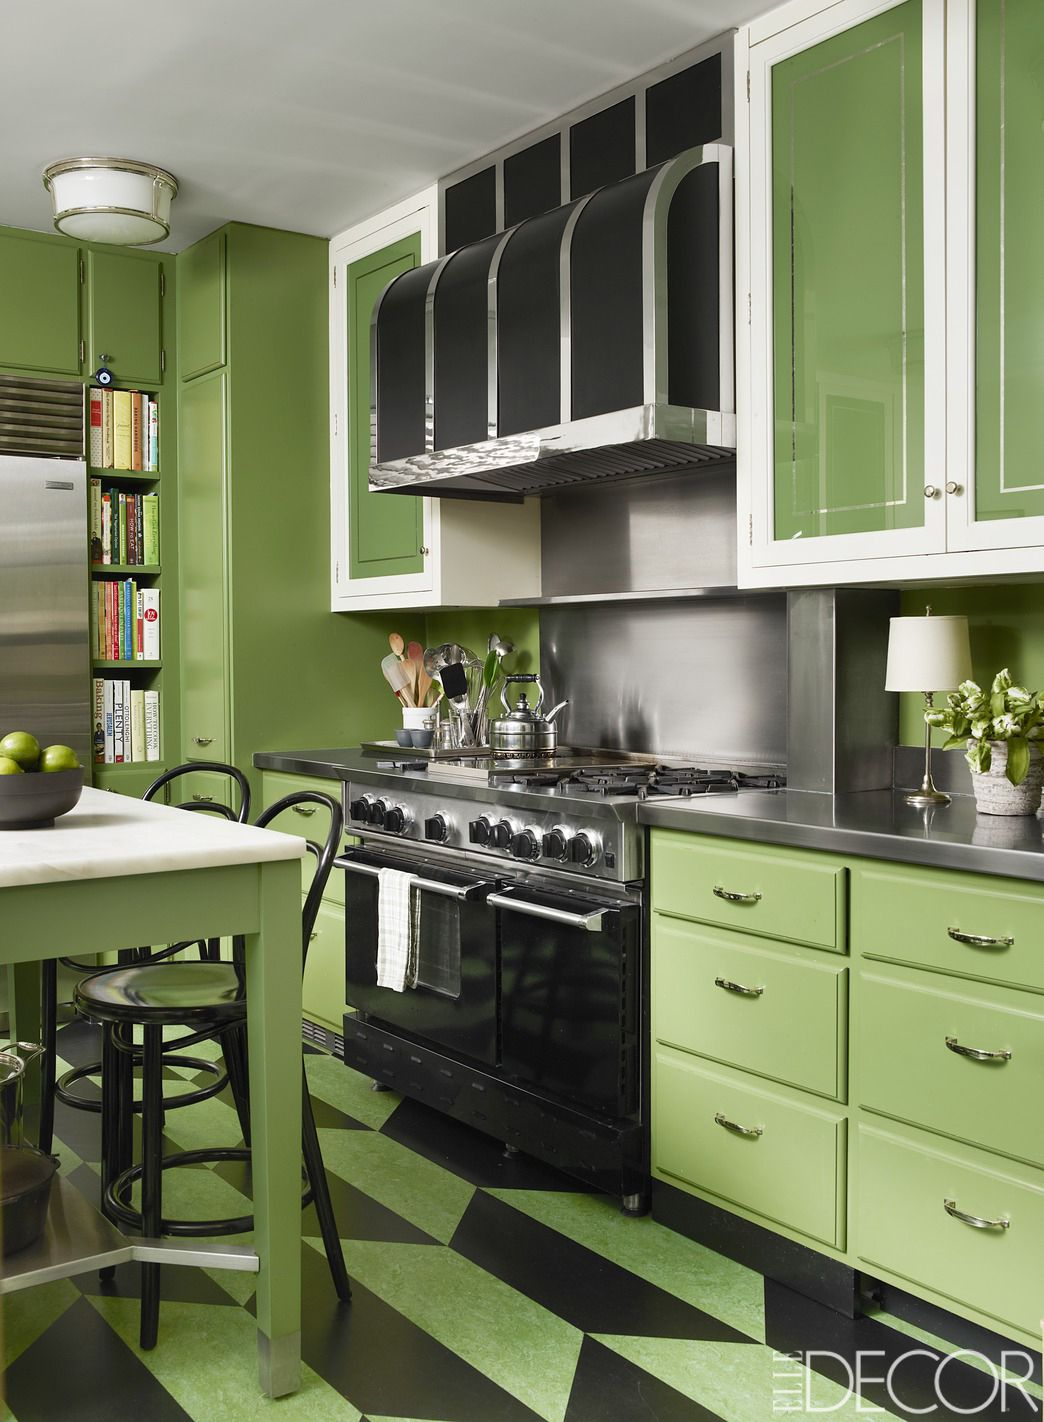 55 small kitchen design ideas decorating tiny kitchens - Decorating Ideas Kitchen